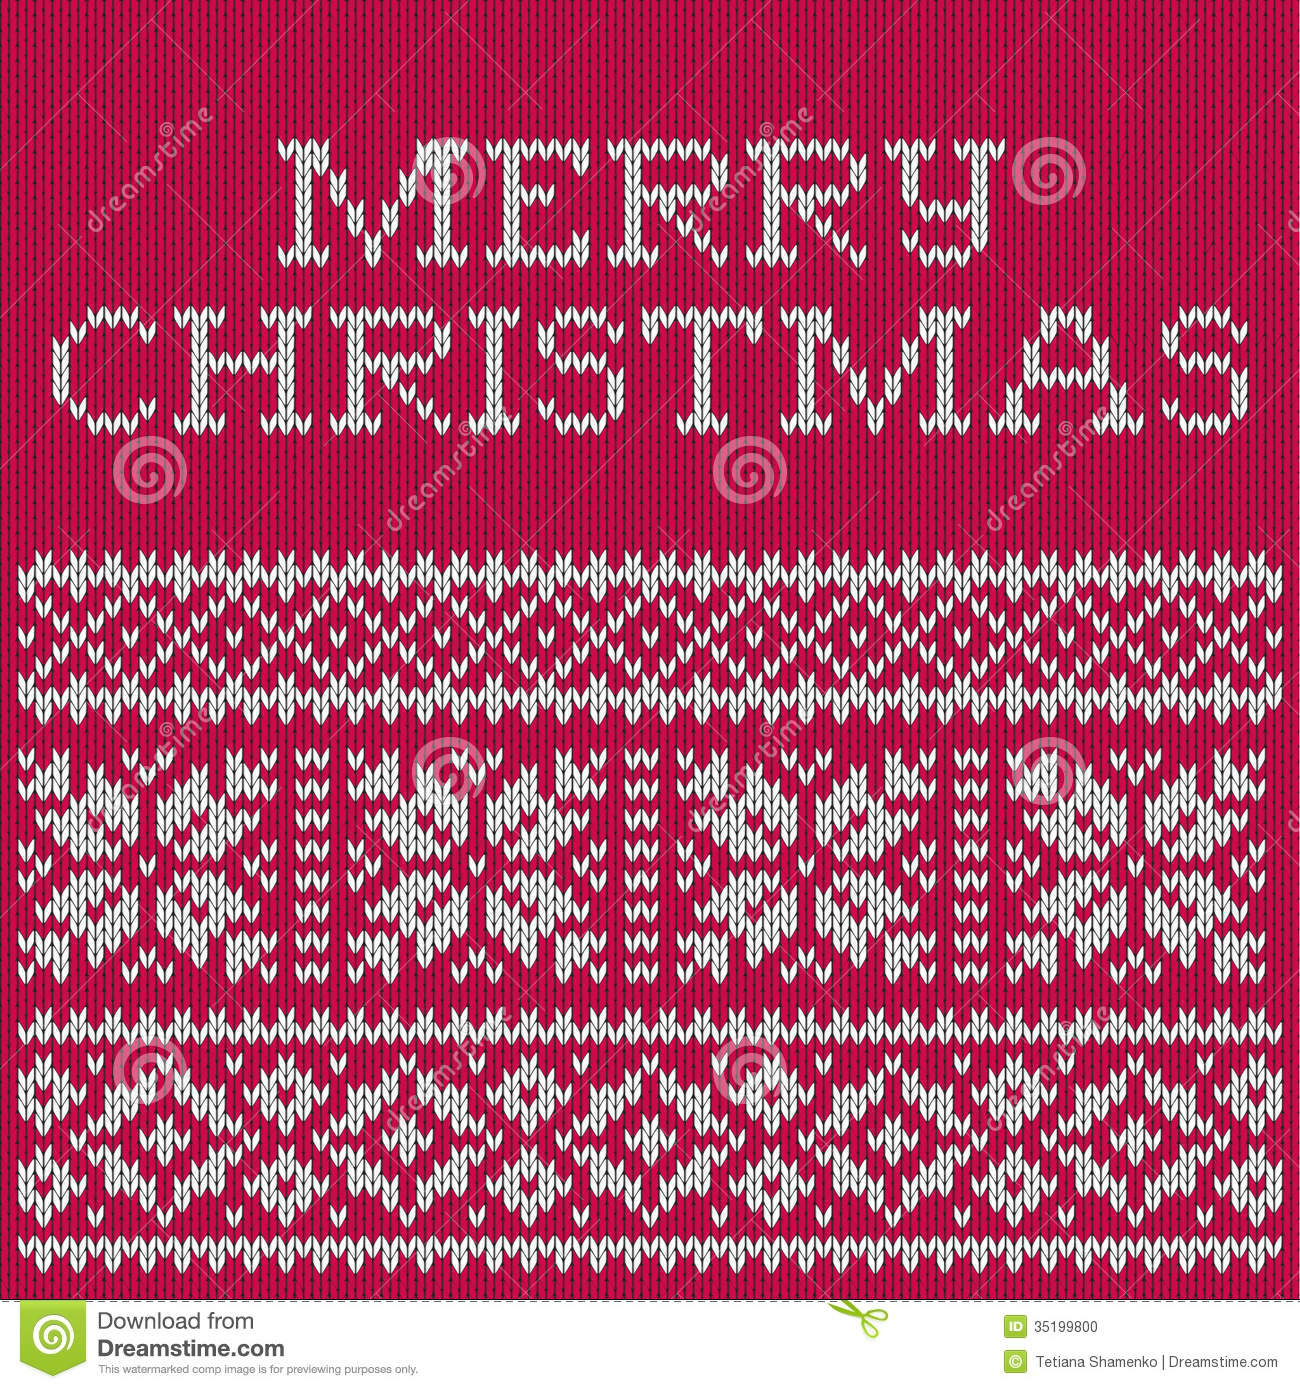 Knitting Patterns For Christmas Cards : Christmas Card, Knitted Pattern Stock Photo - Image: 35199800